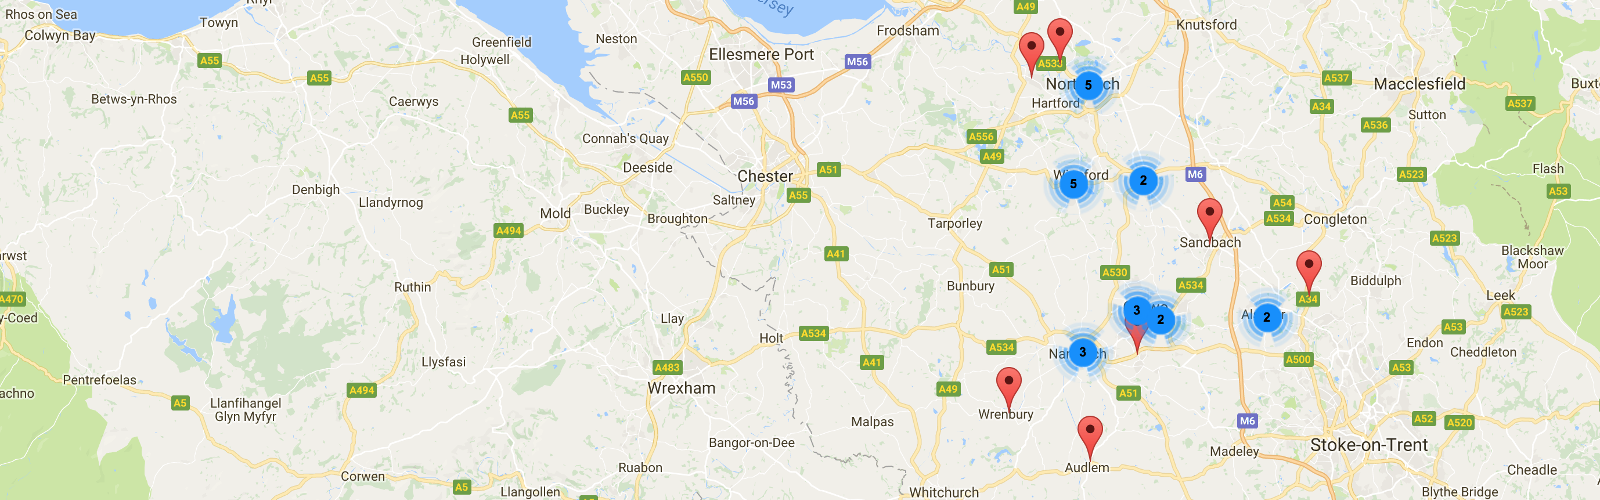 Map of GP Practices within South Cheshire and Vale Royal GP Alliance